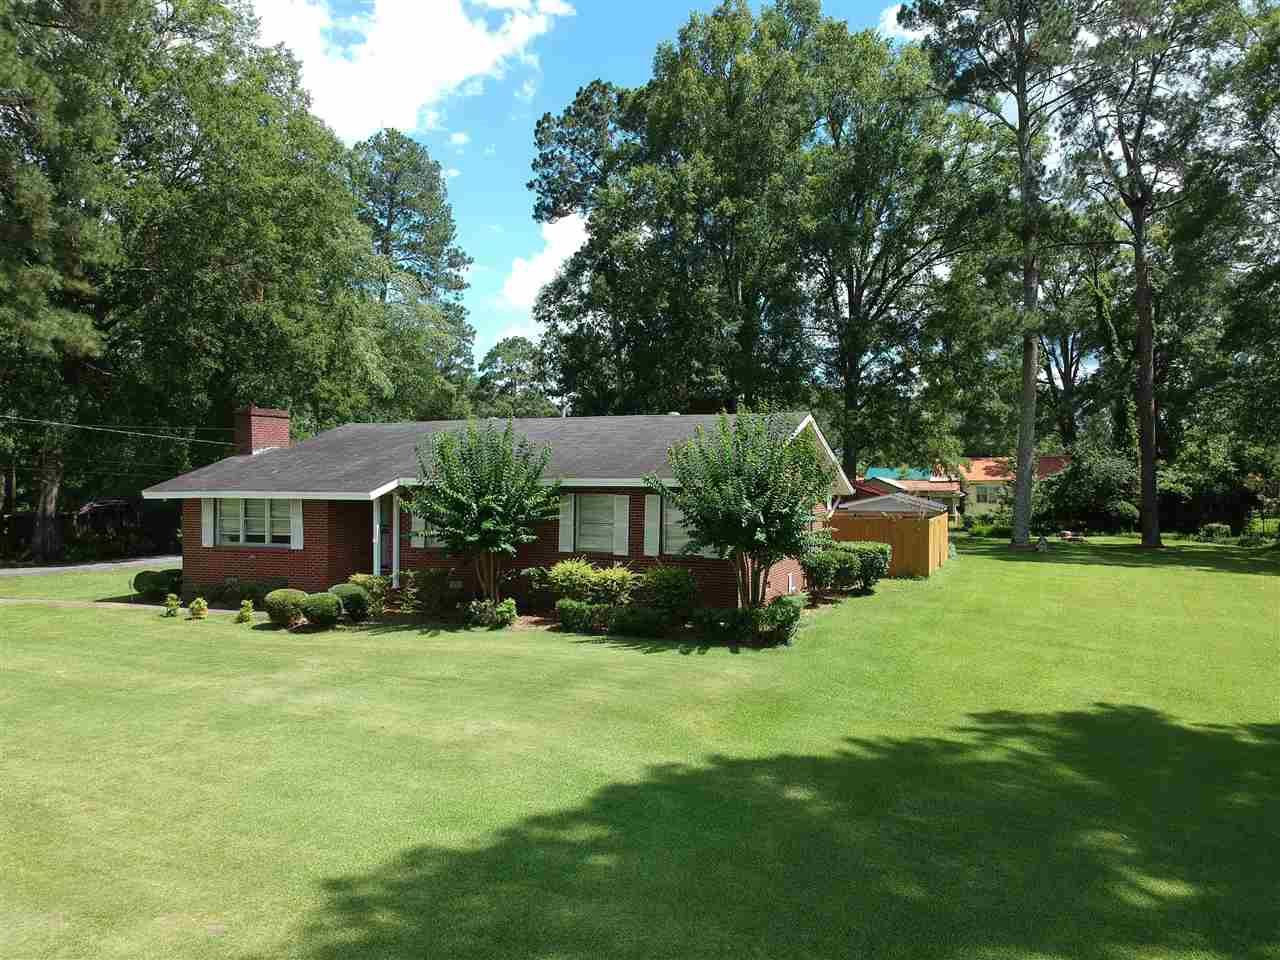 811 MARION BLVD, Forest, MS 39074 - MLS#: 340800